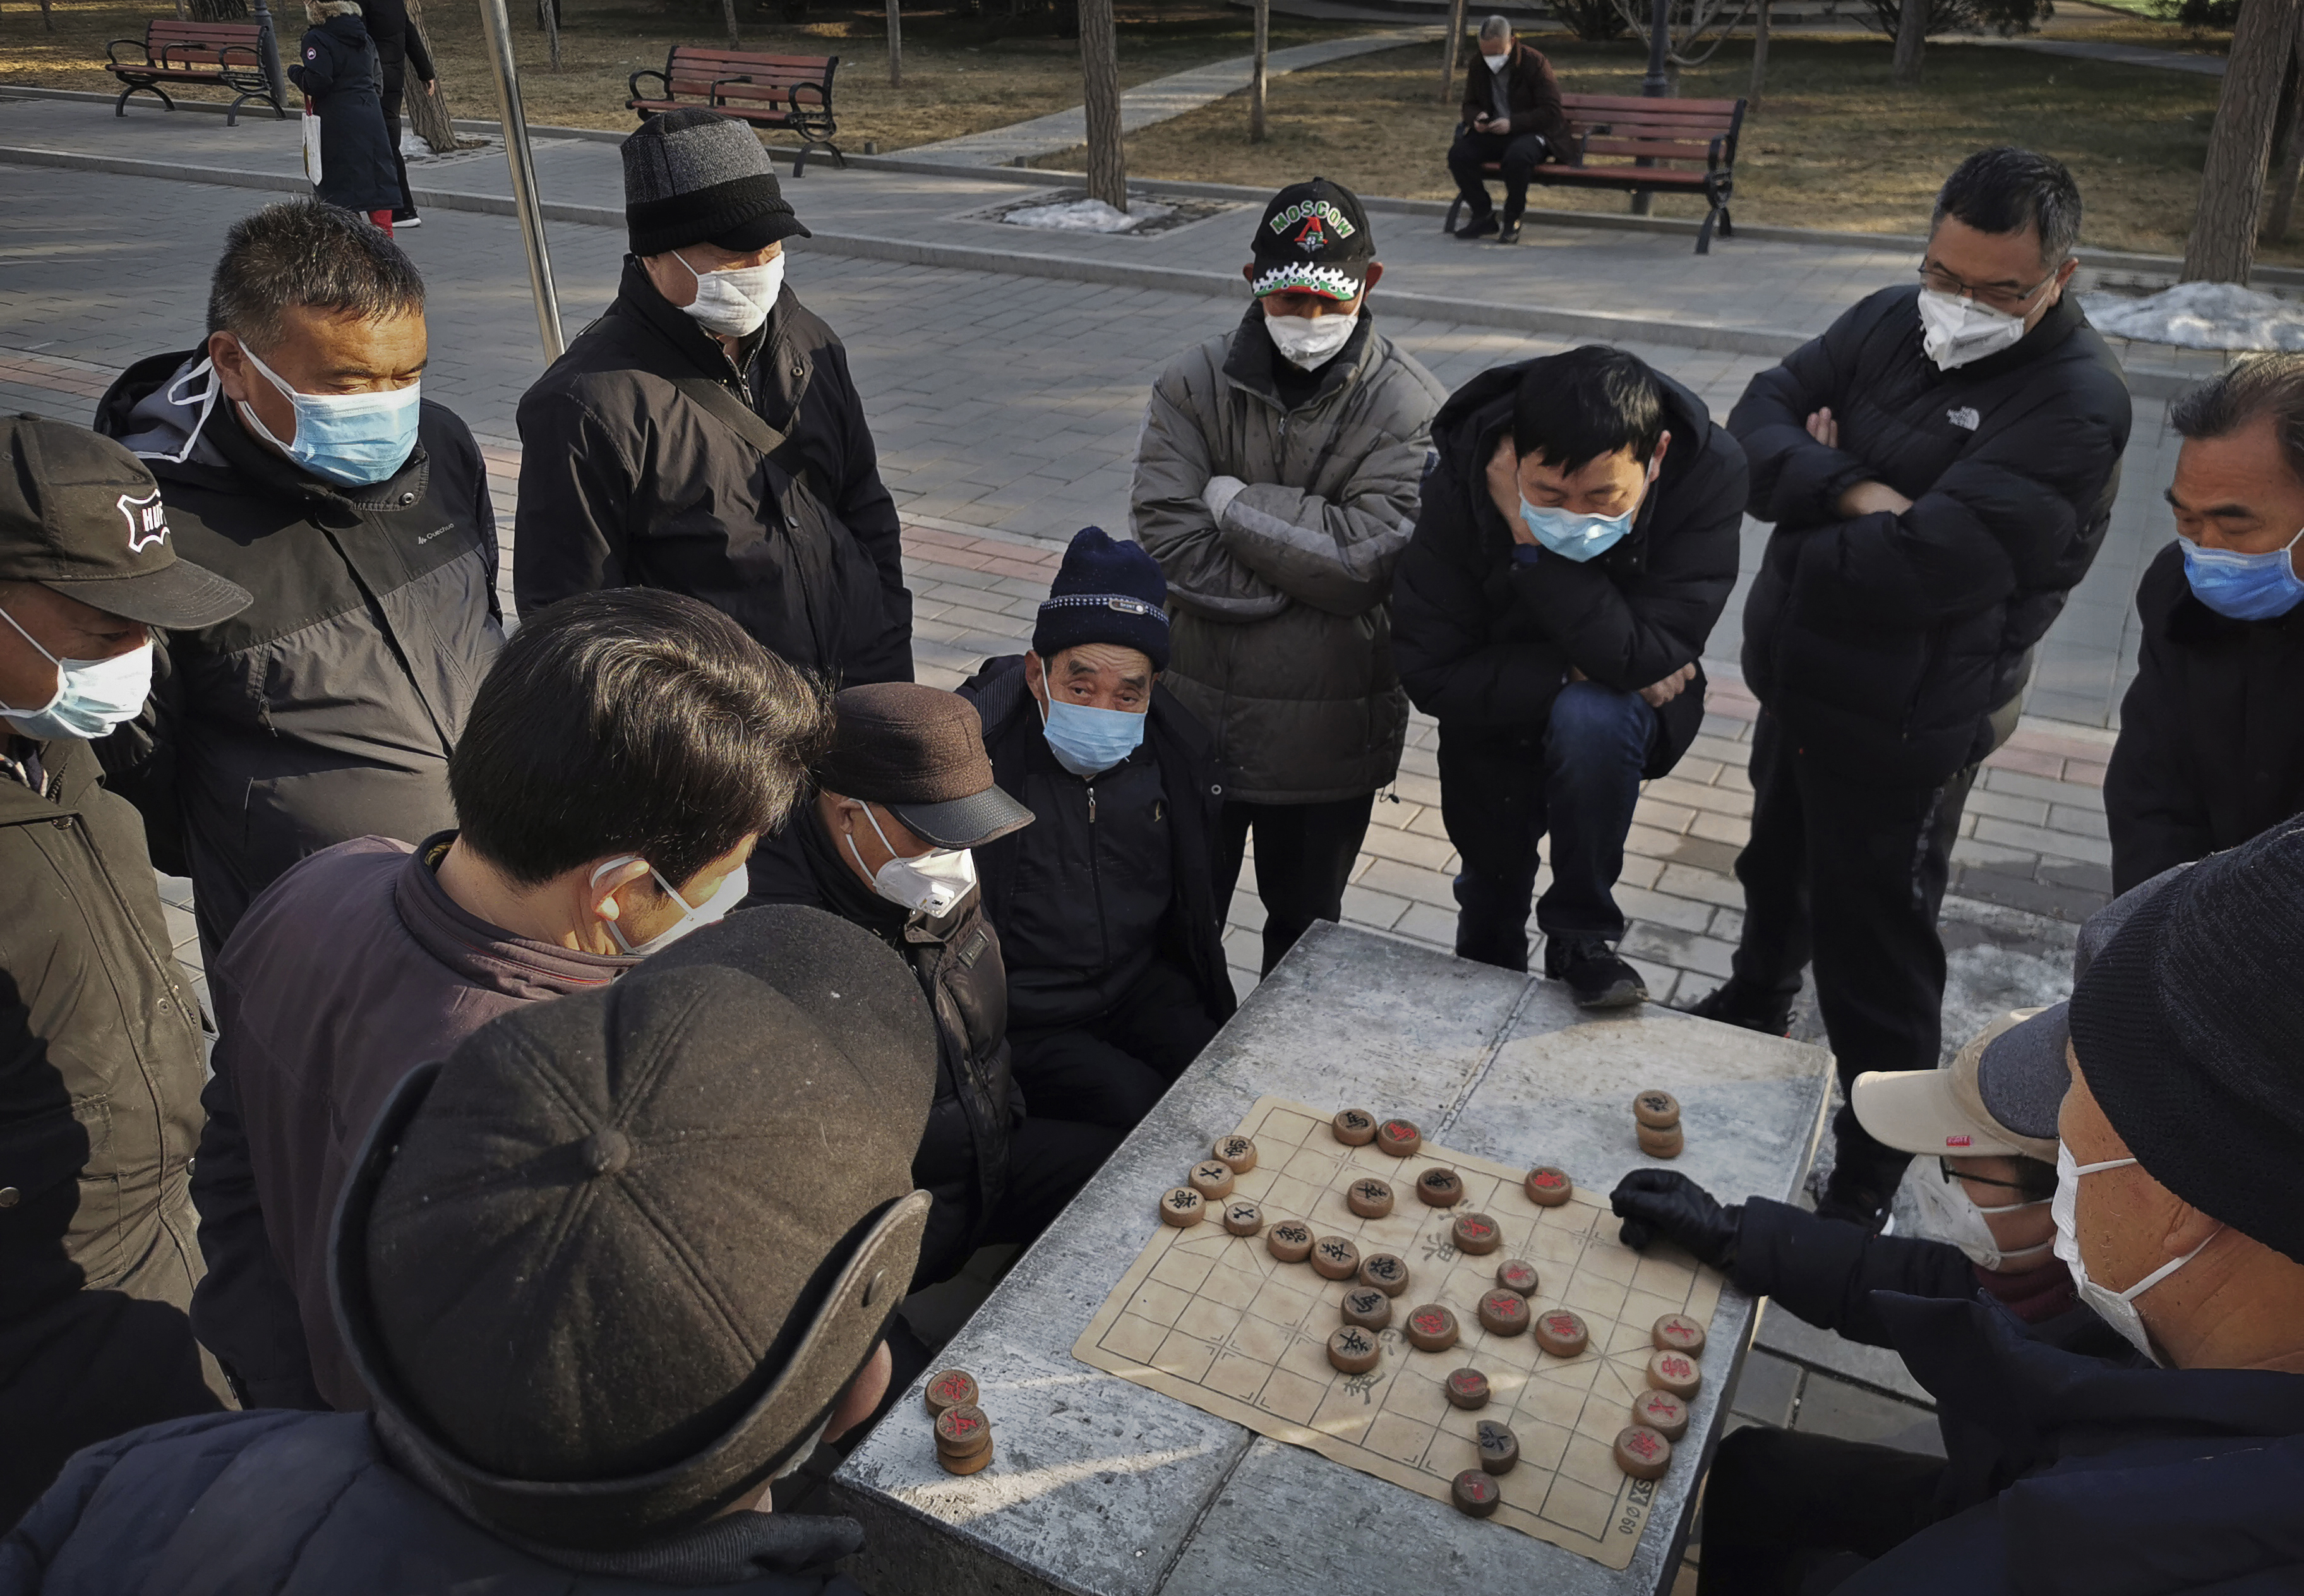 Men wear masks as they play Chinese chess in a Beijing park on January 31, 2020.